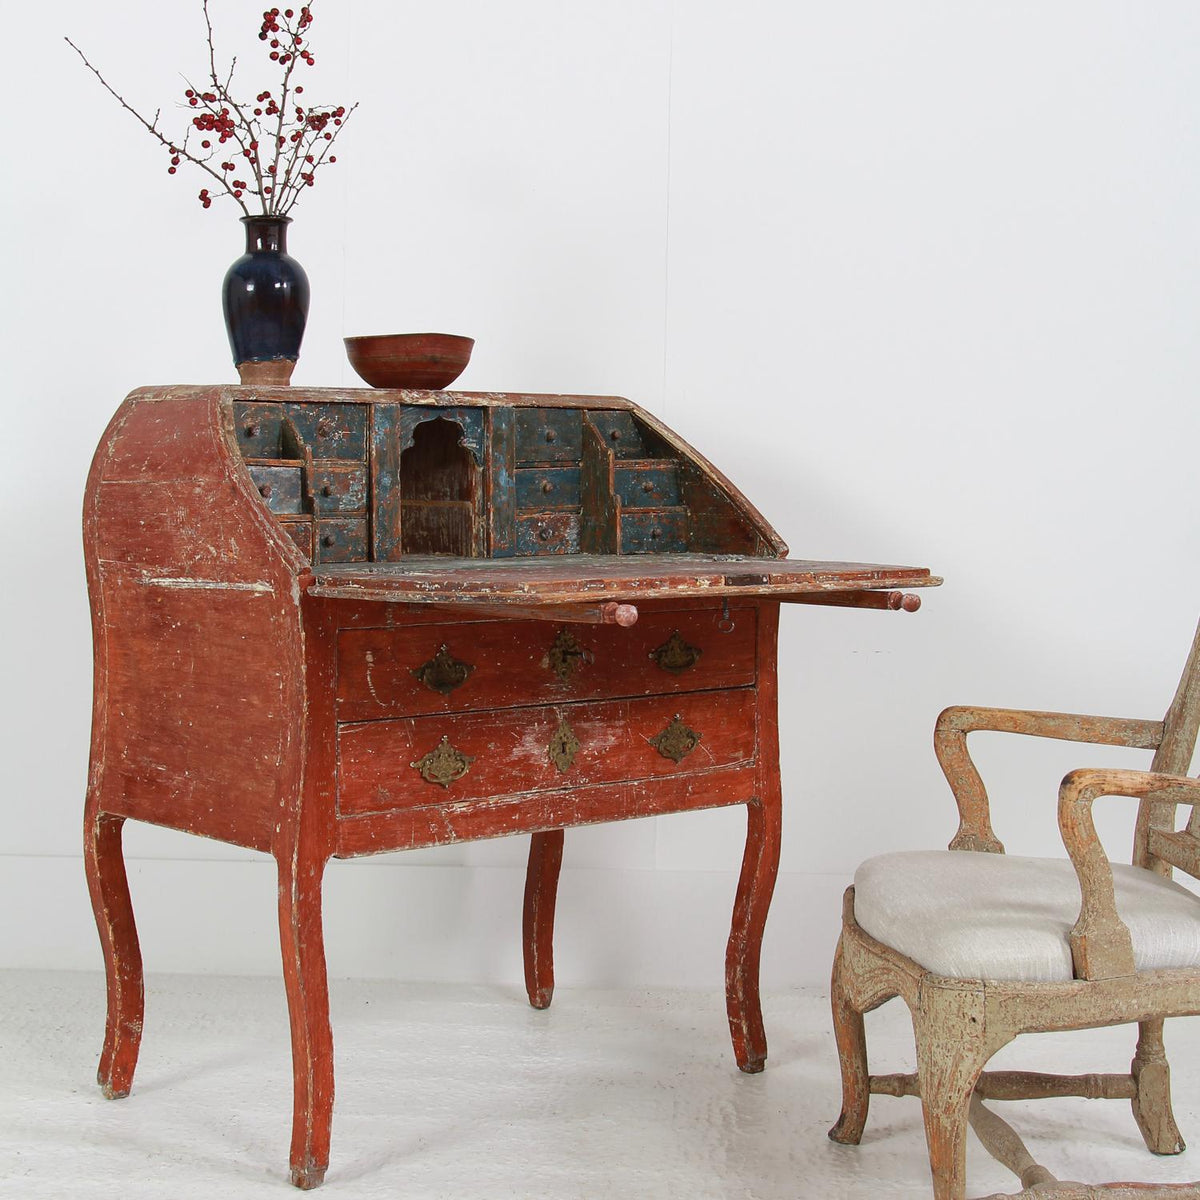 Exquisite 18th Century Swedish Rococo Bureau/Writing Desk